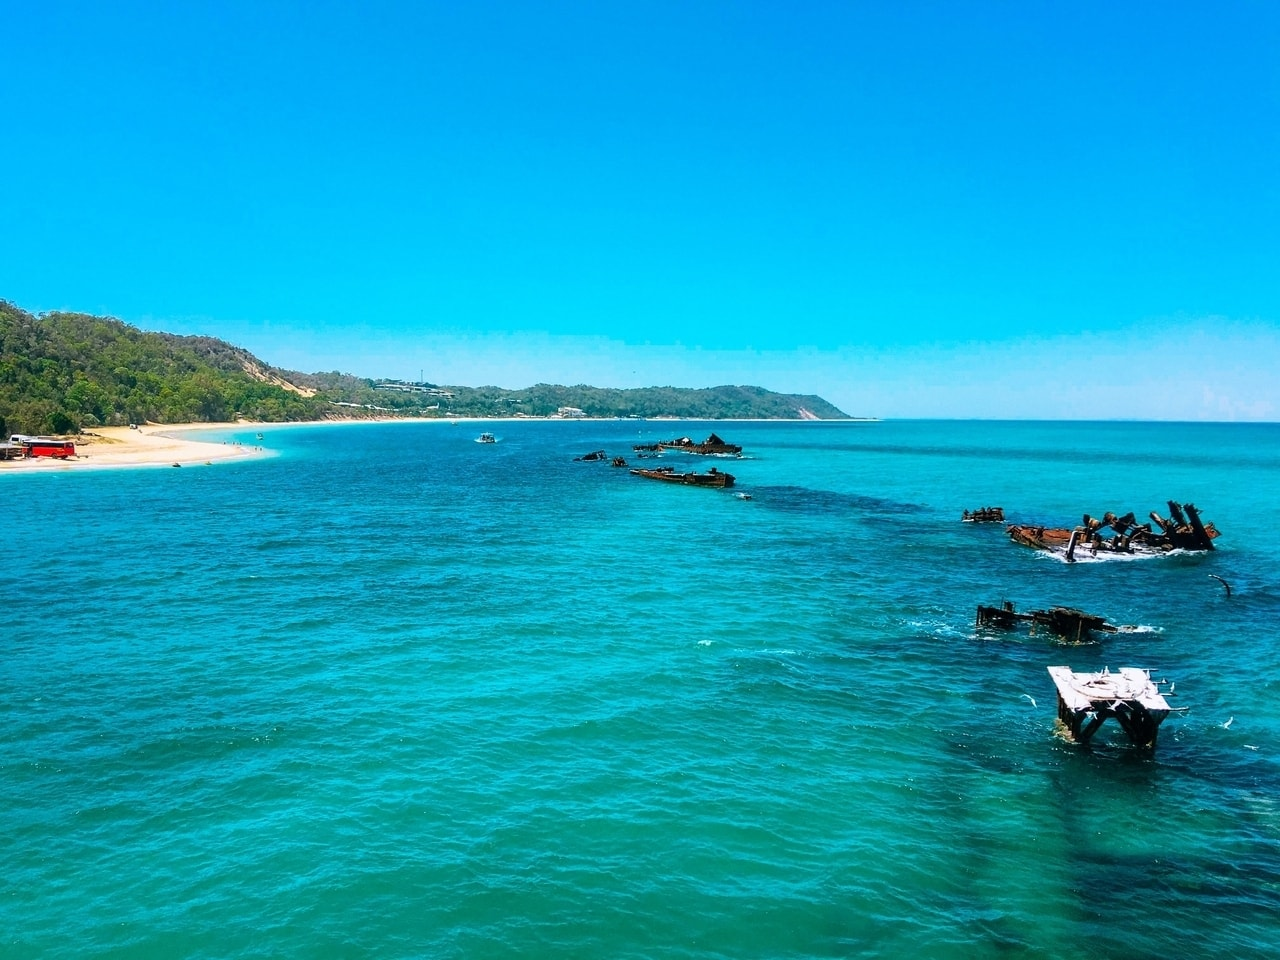 Visiting Moreton Island in Australia is one of my best backpacking tips